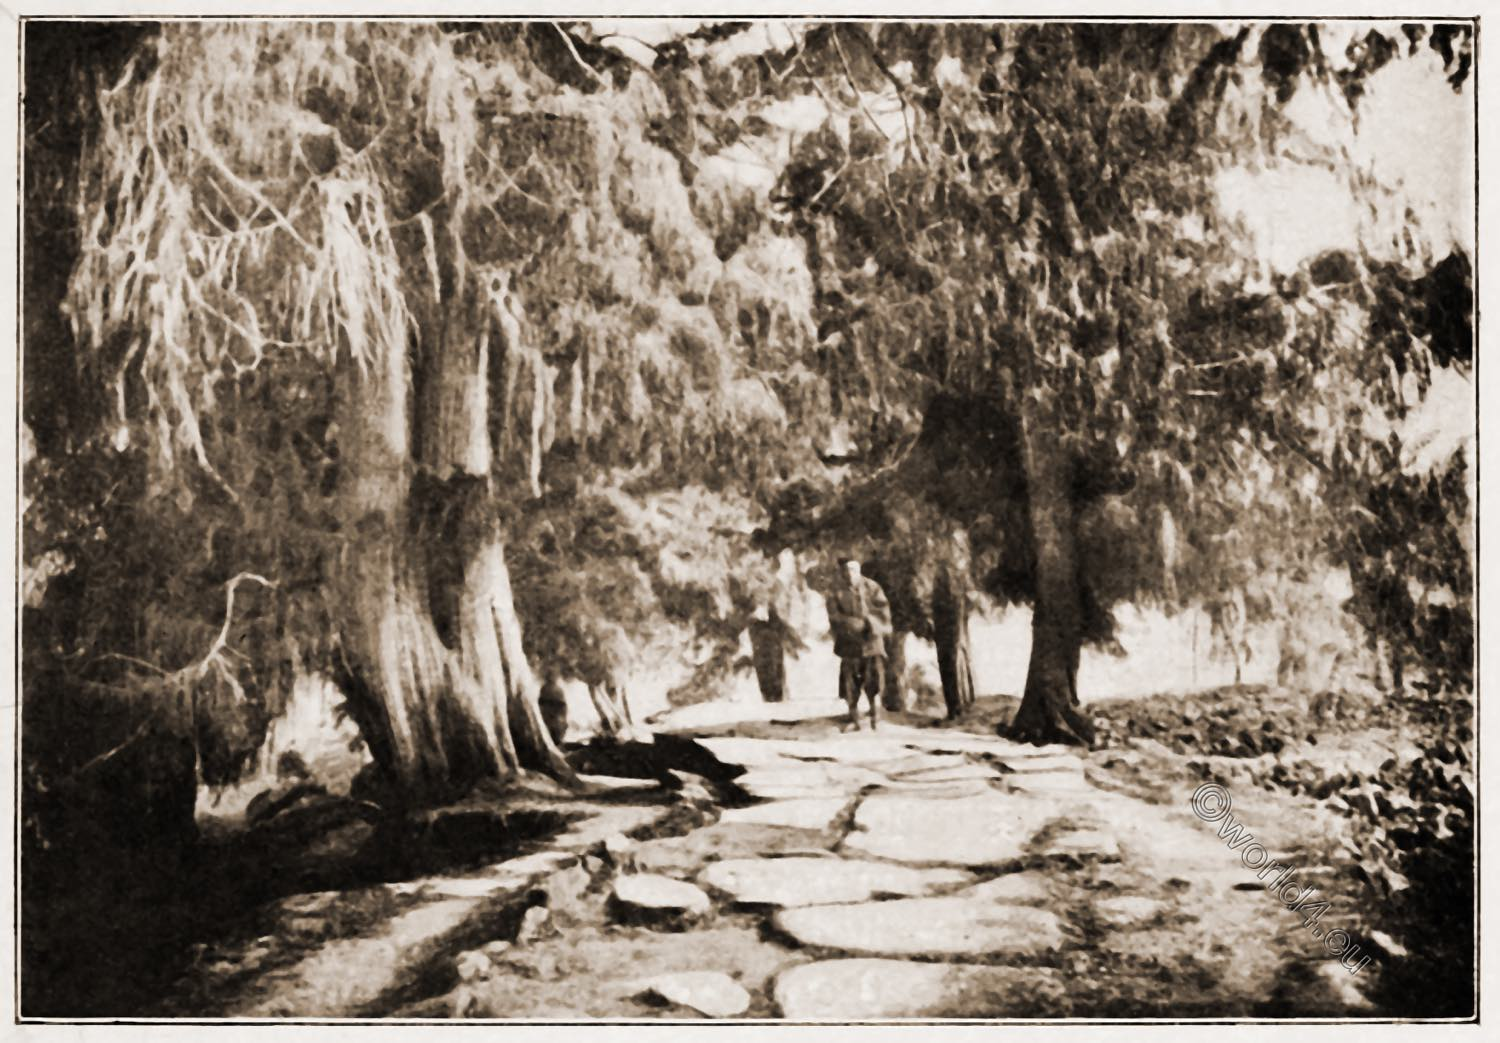 Antique, old, Chinese, pictures, imperial, stone, road, Isabella Lucy Bird